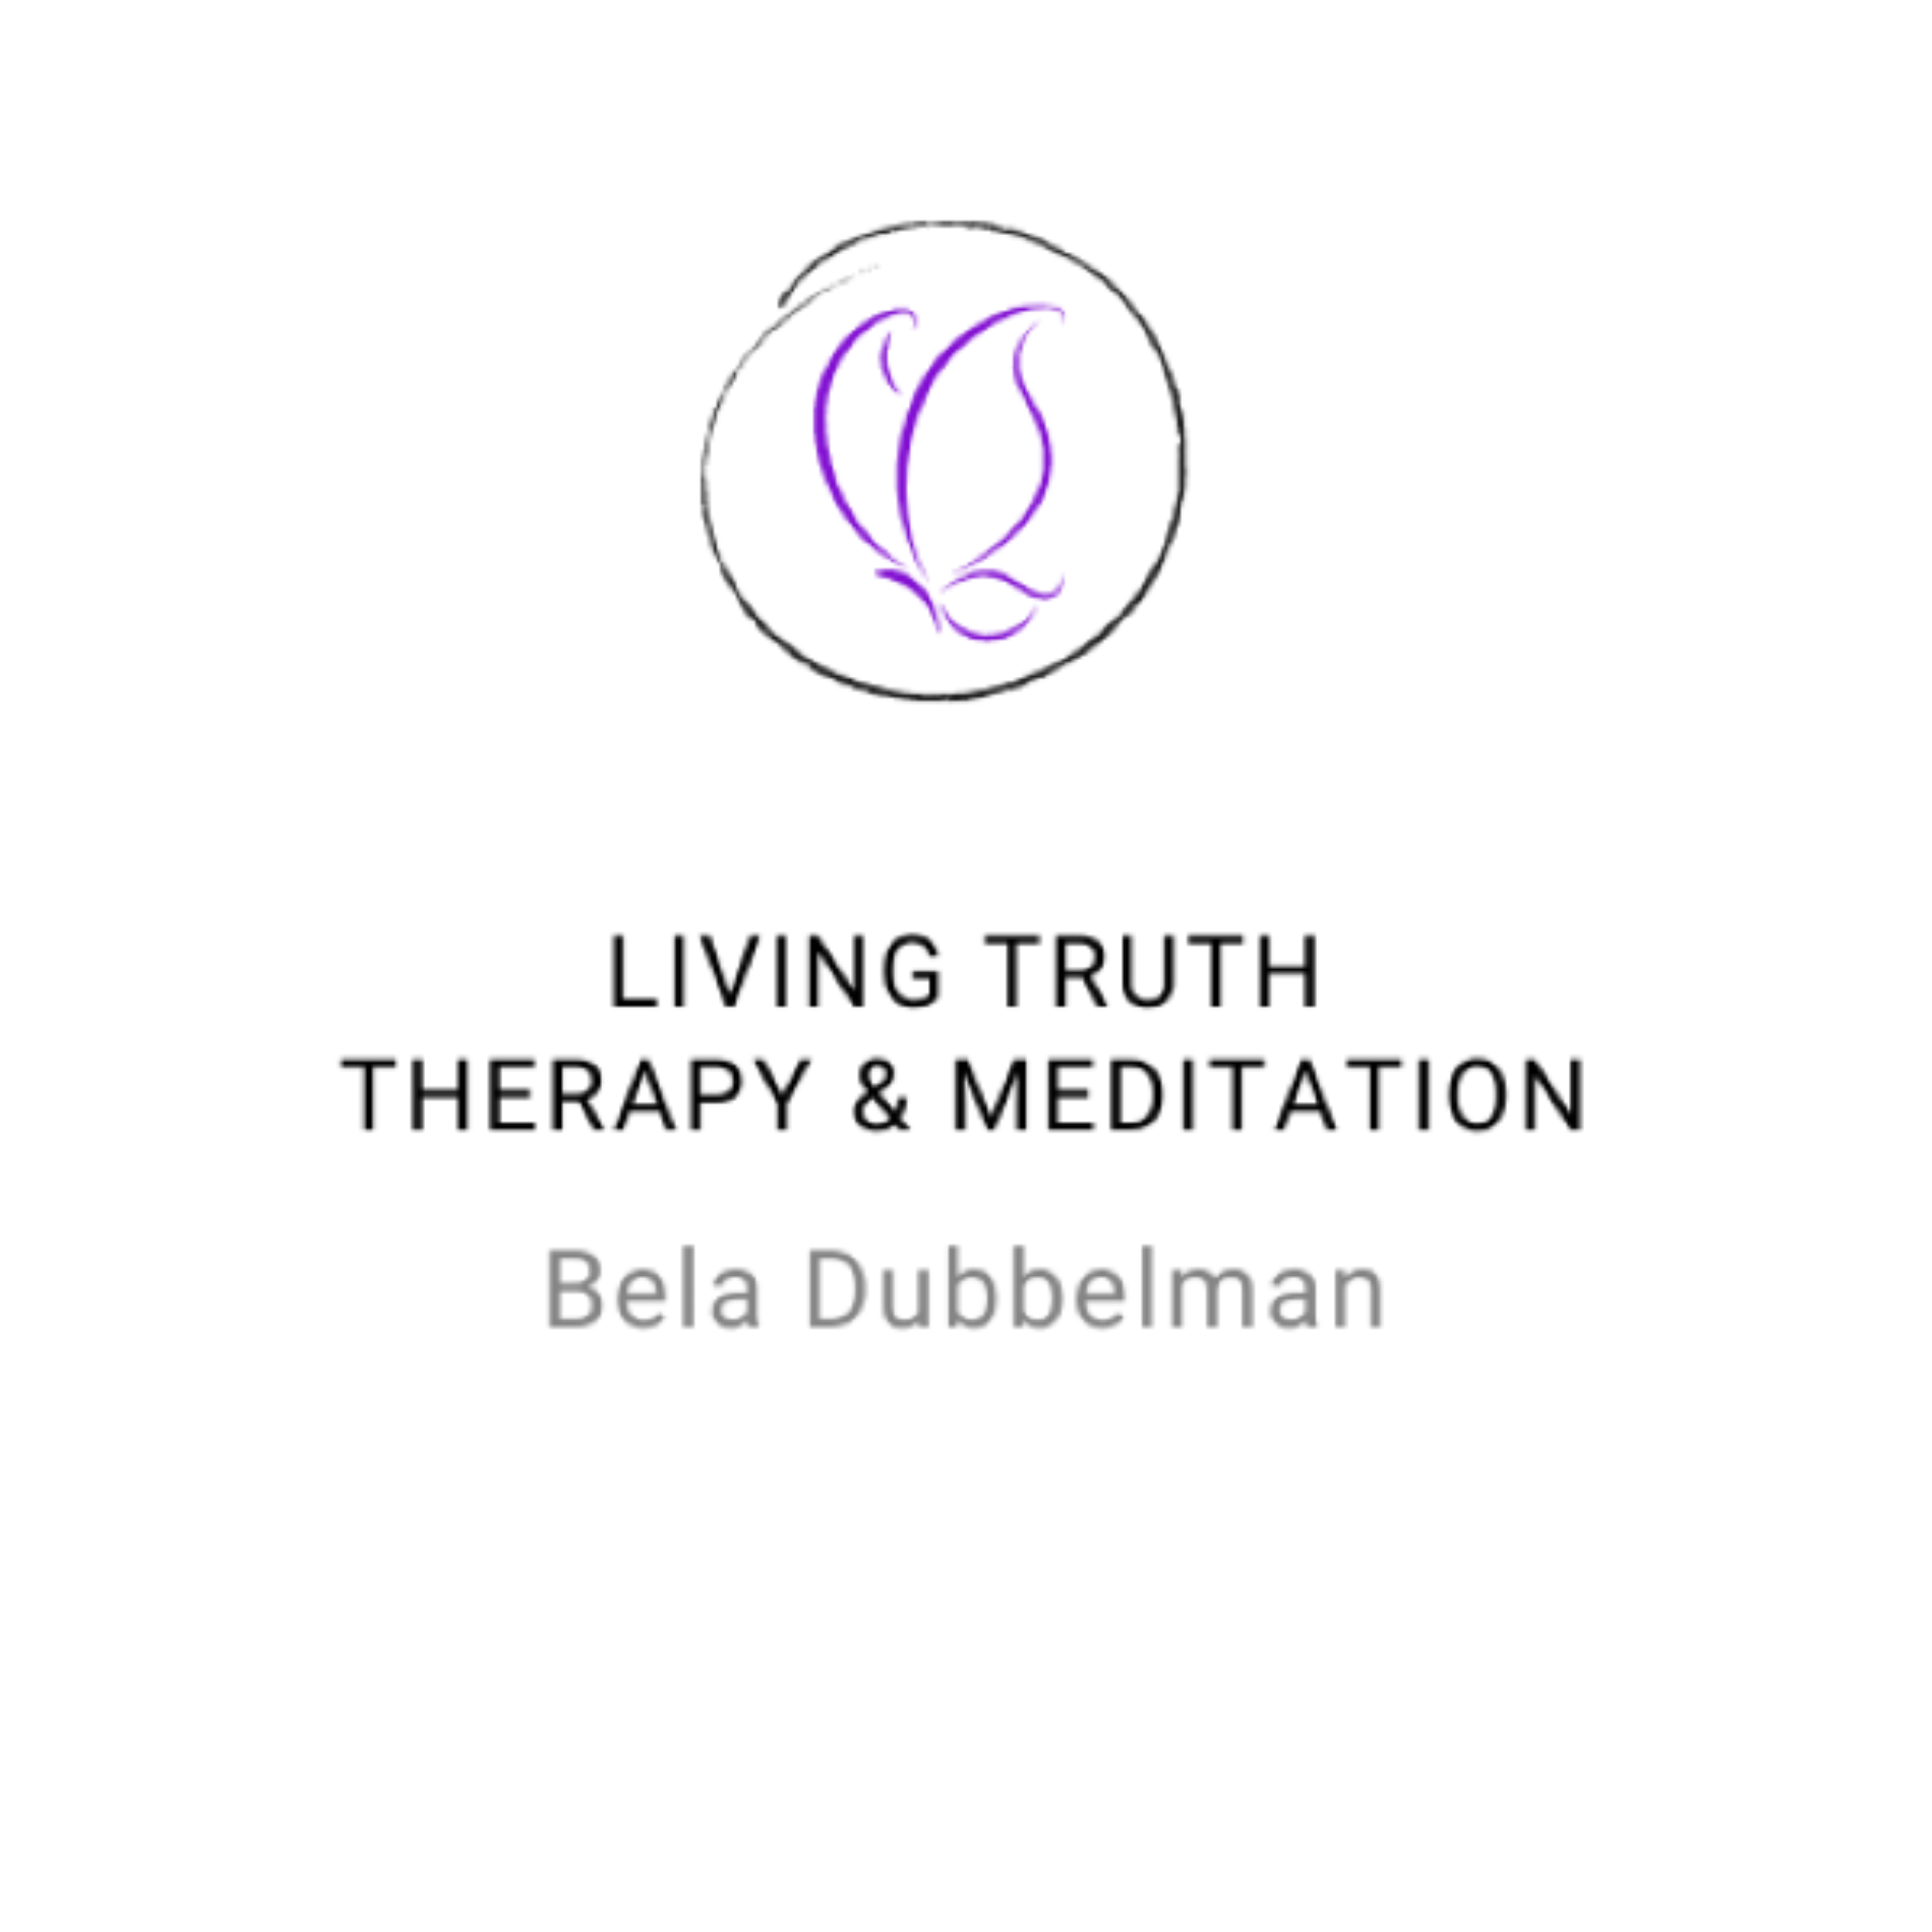 Bela Dubbelman ~ LIVING TRUTH Therapy & Meditation